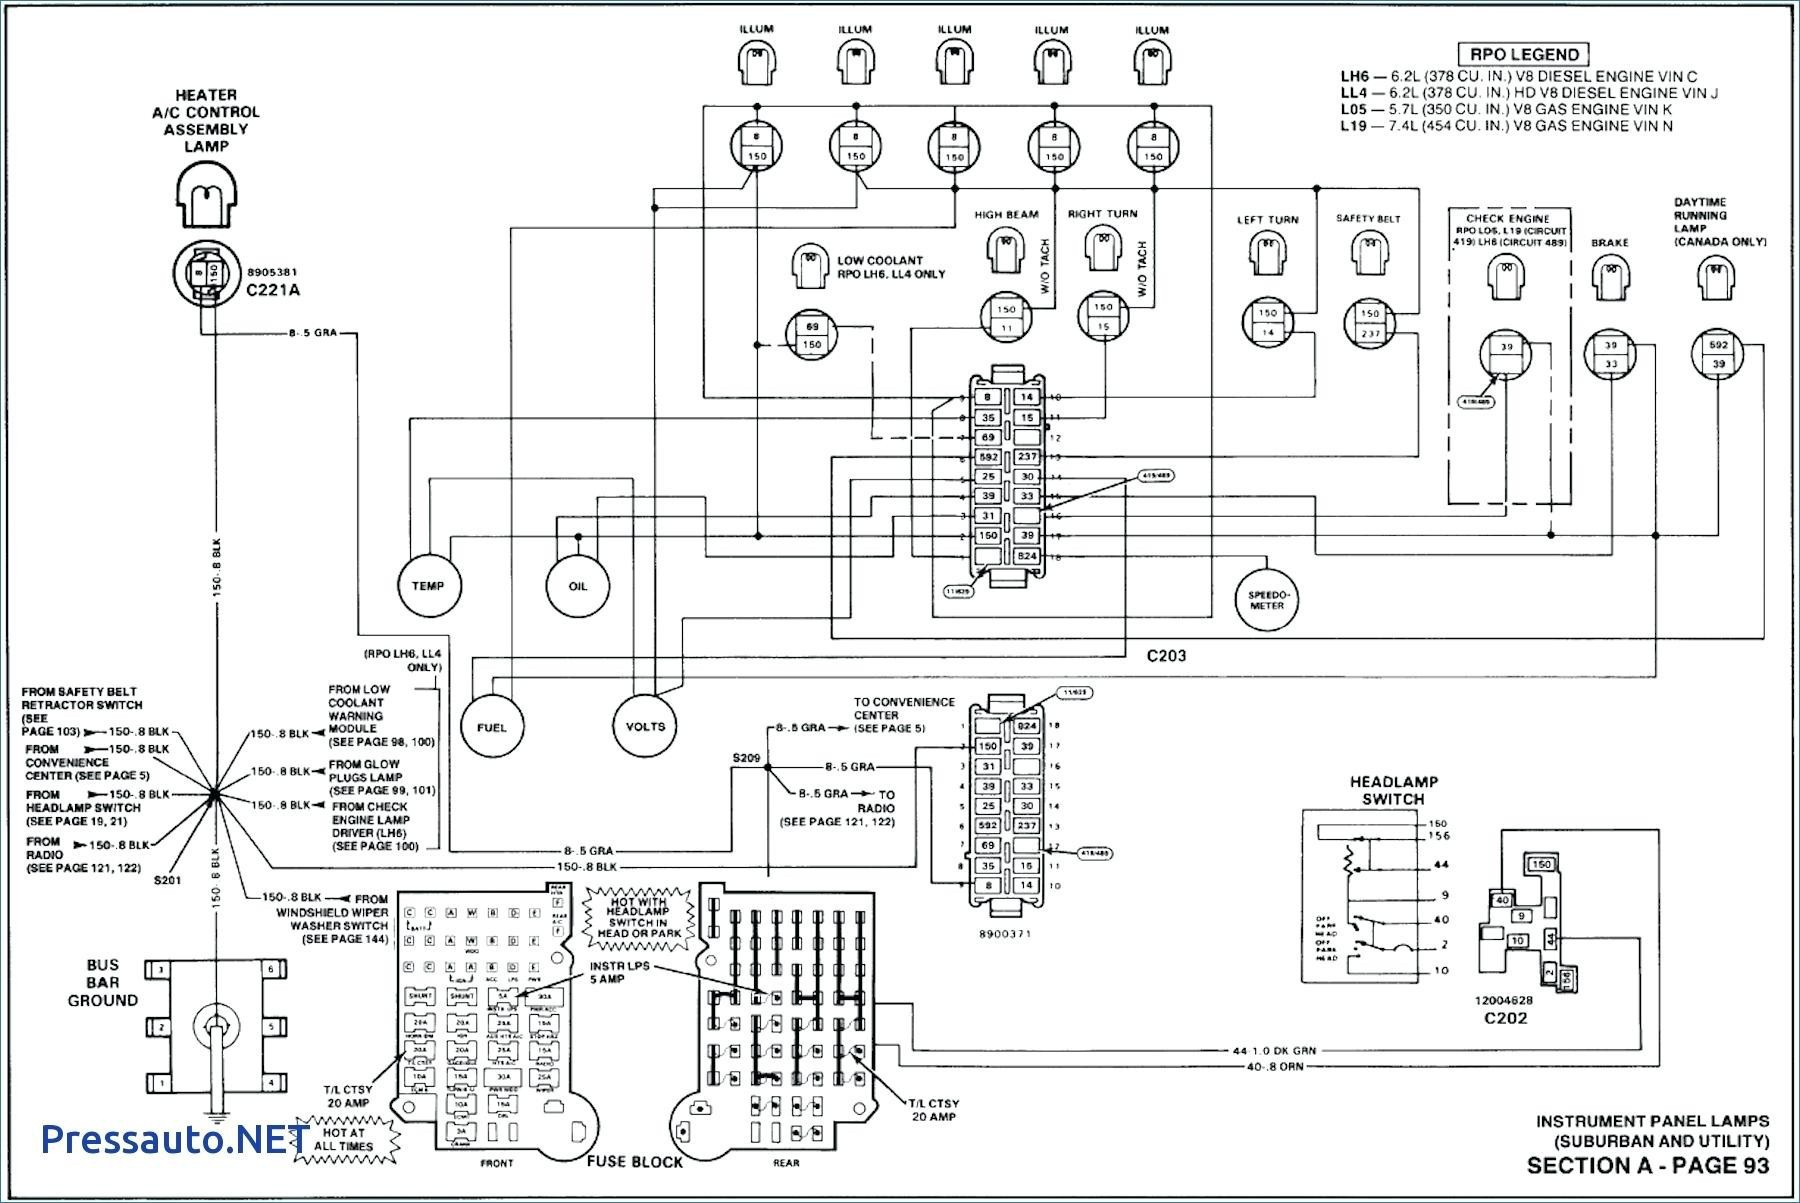 789fe7 Suburban Water Heater Wiring Diagram Wiring Library